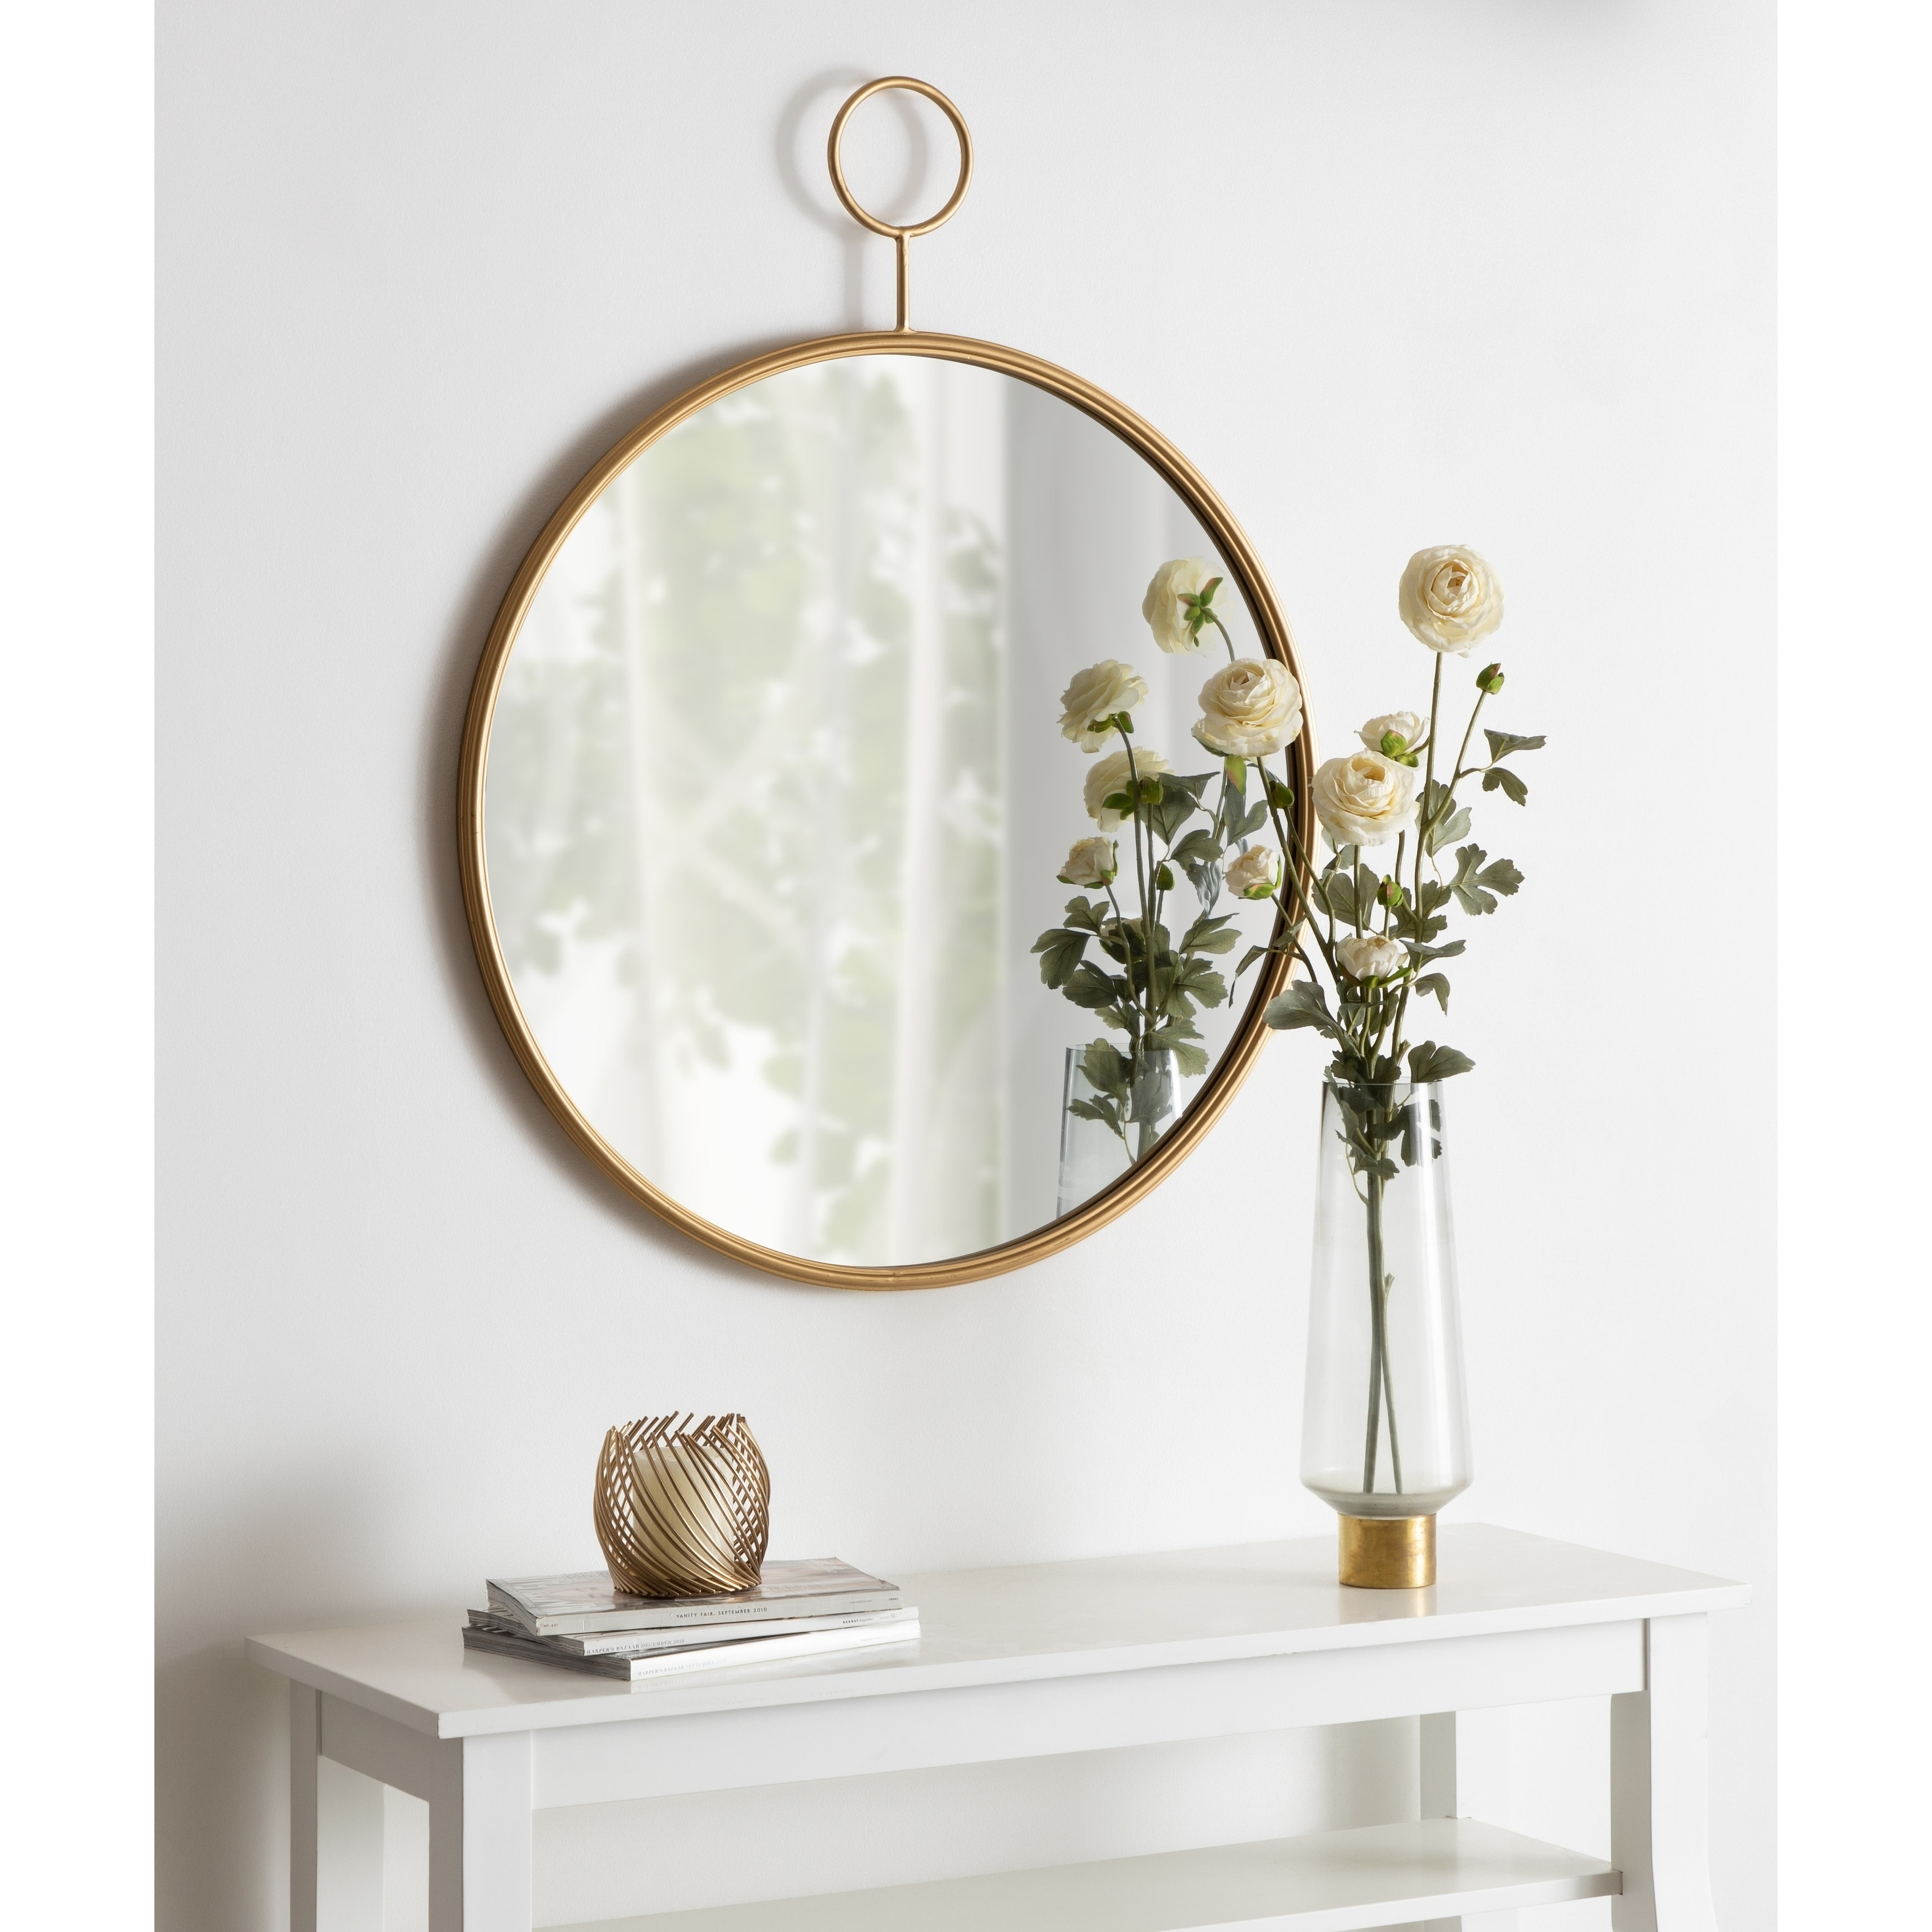 Image of: Shop Black Friday Deals On Kate And Laurel Chayce Mid Century Modern Round Wall Mirror Gold 30×37 75 Overstock 30025019